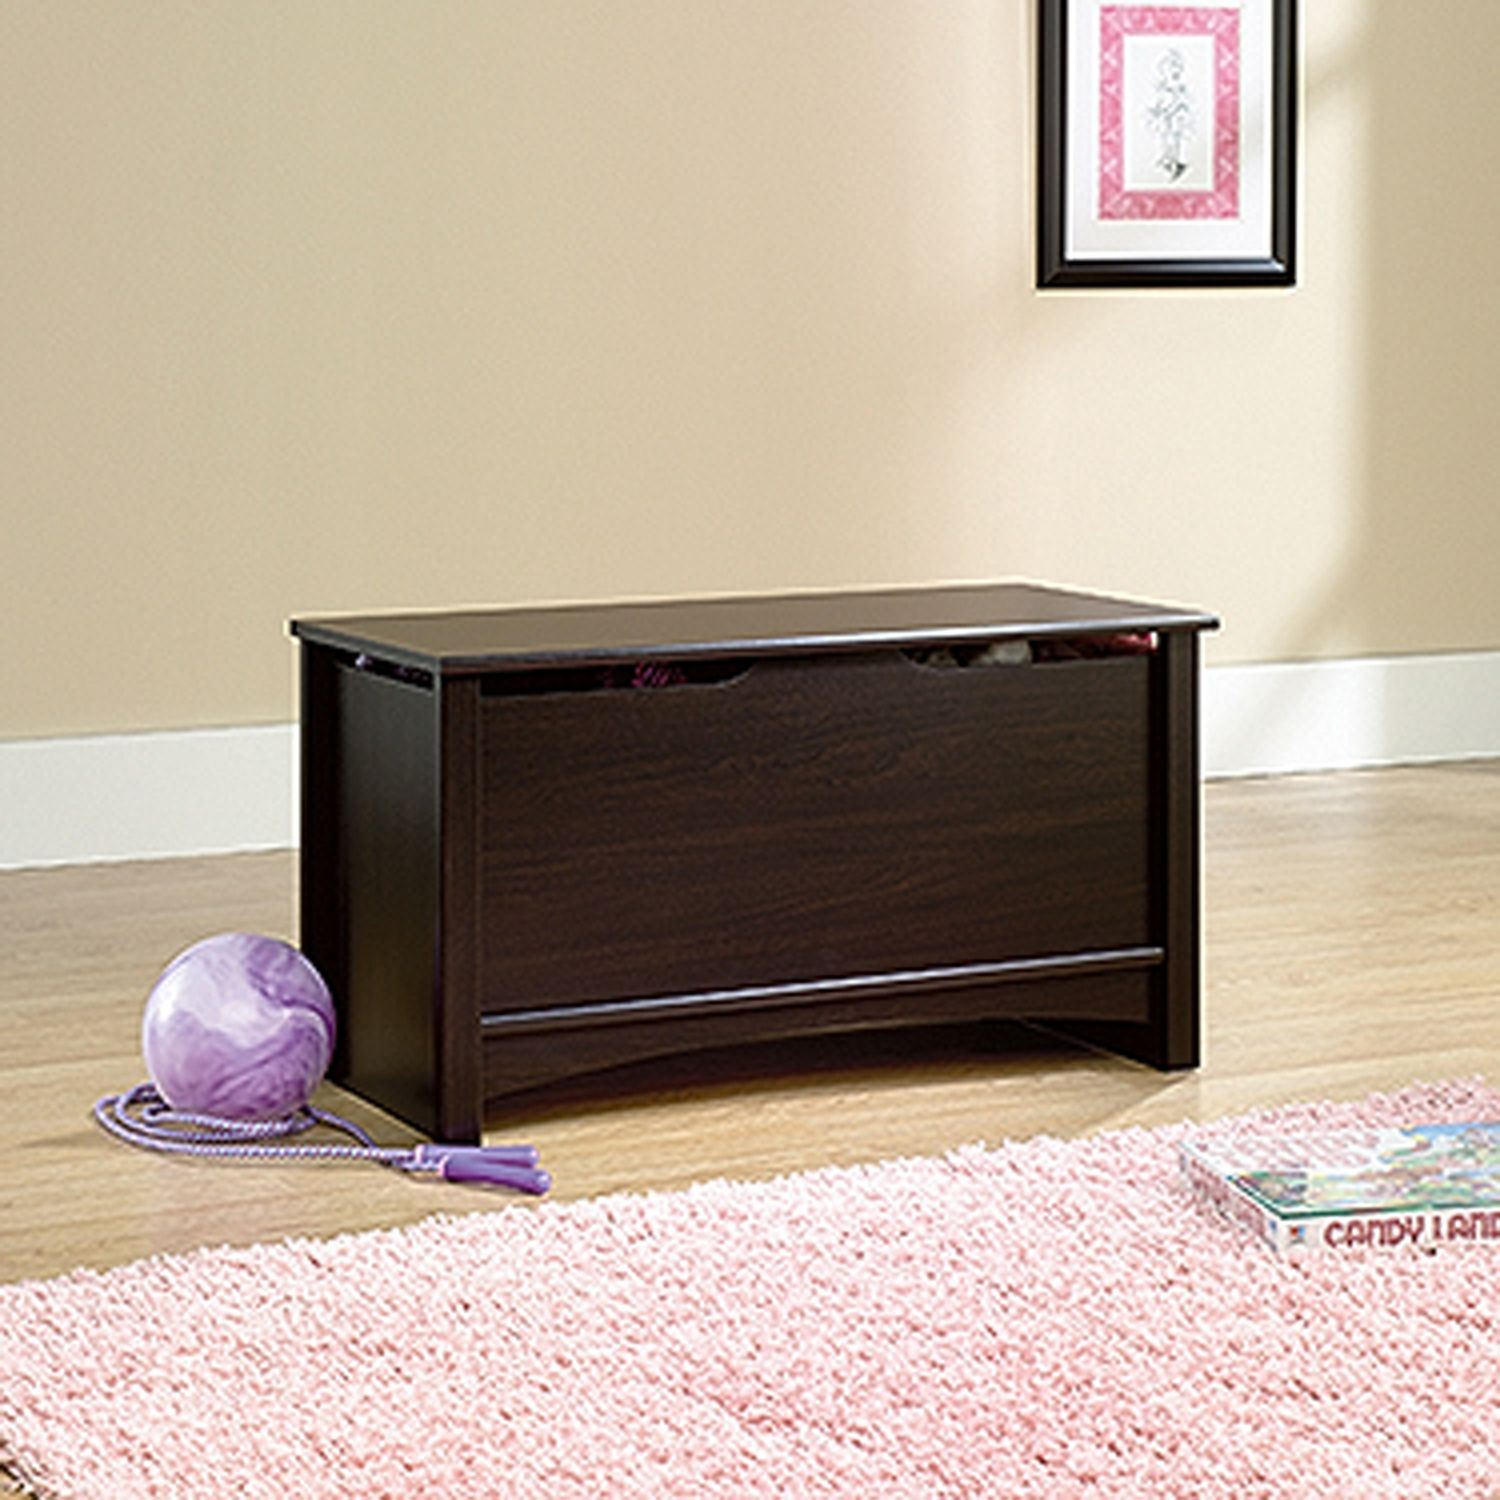 Picture of Shoal Creek Storage Chest Jamocha Wood * D